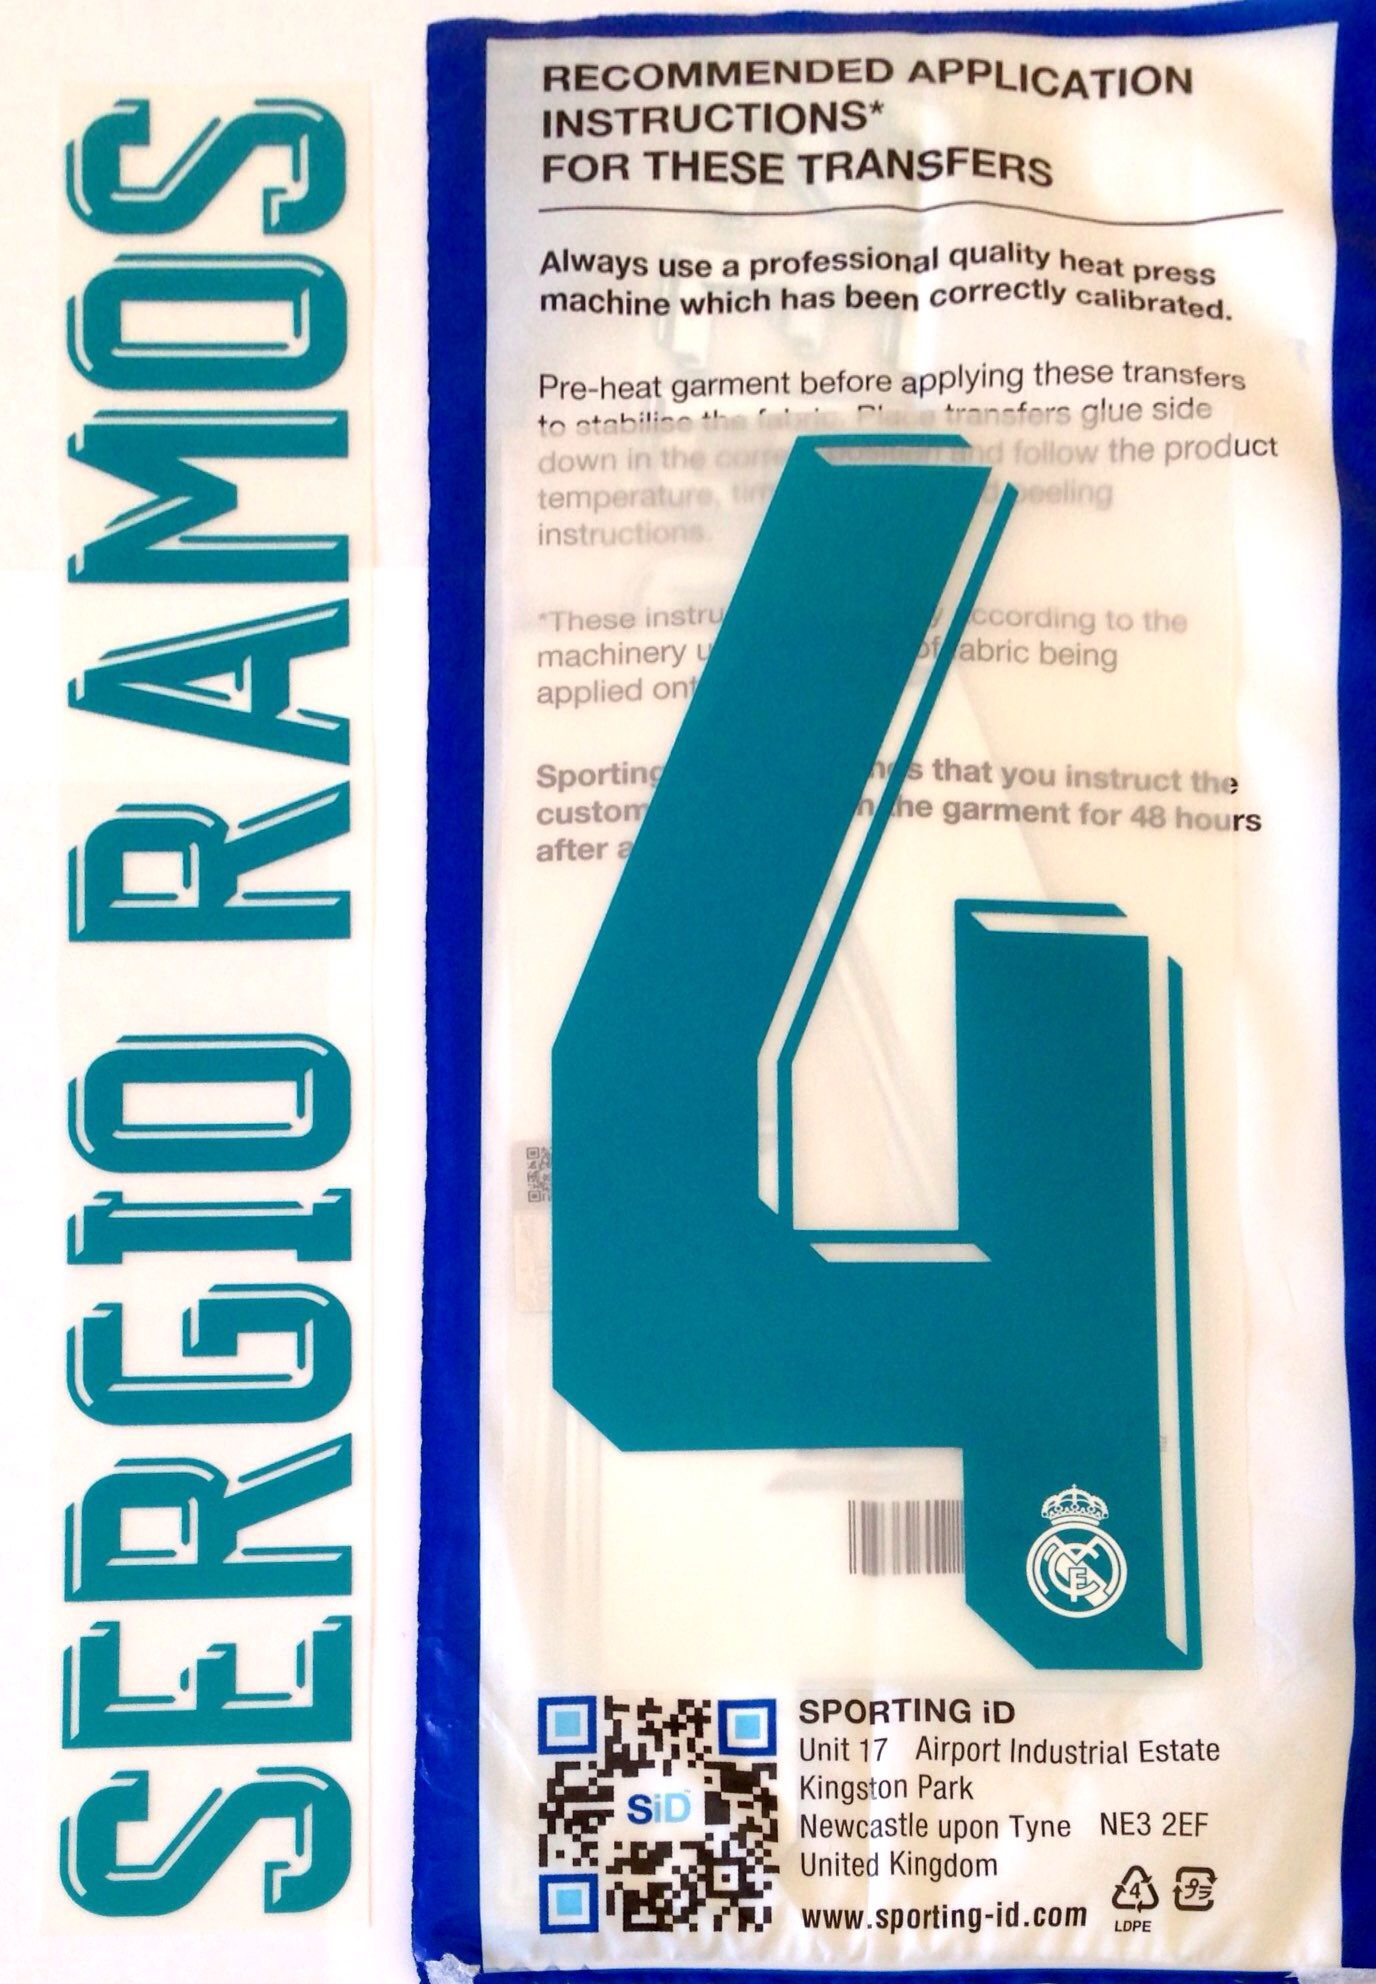 2017-18 Real Madrid SERGIO RAMOS 4 Home UCL Shirt OFFICIAL SportingiD Name  Number Set d35a0bef3